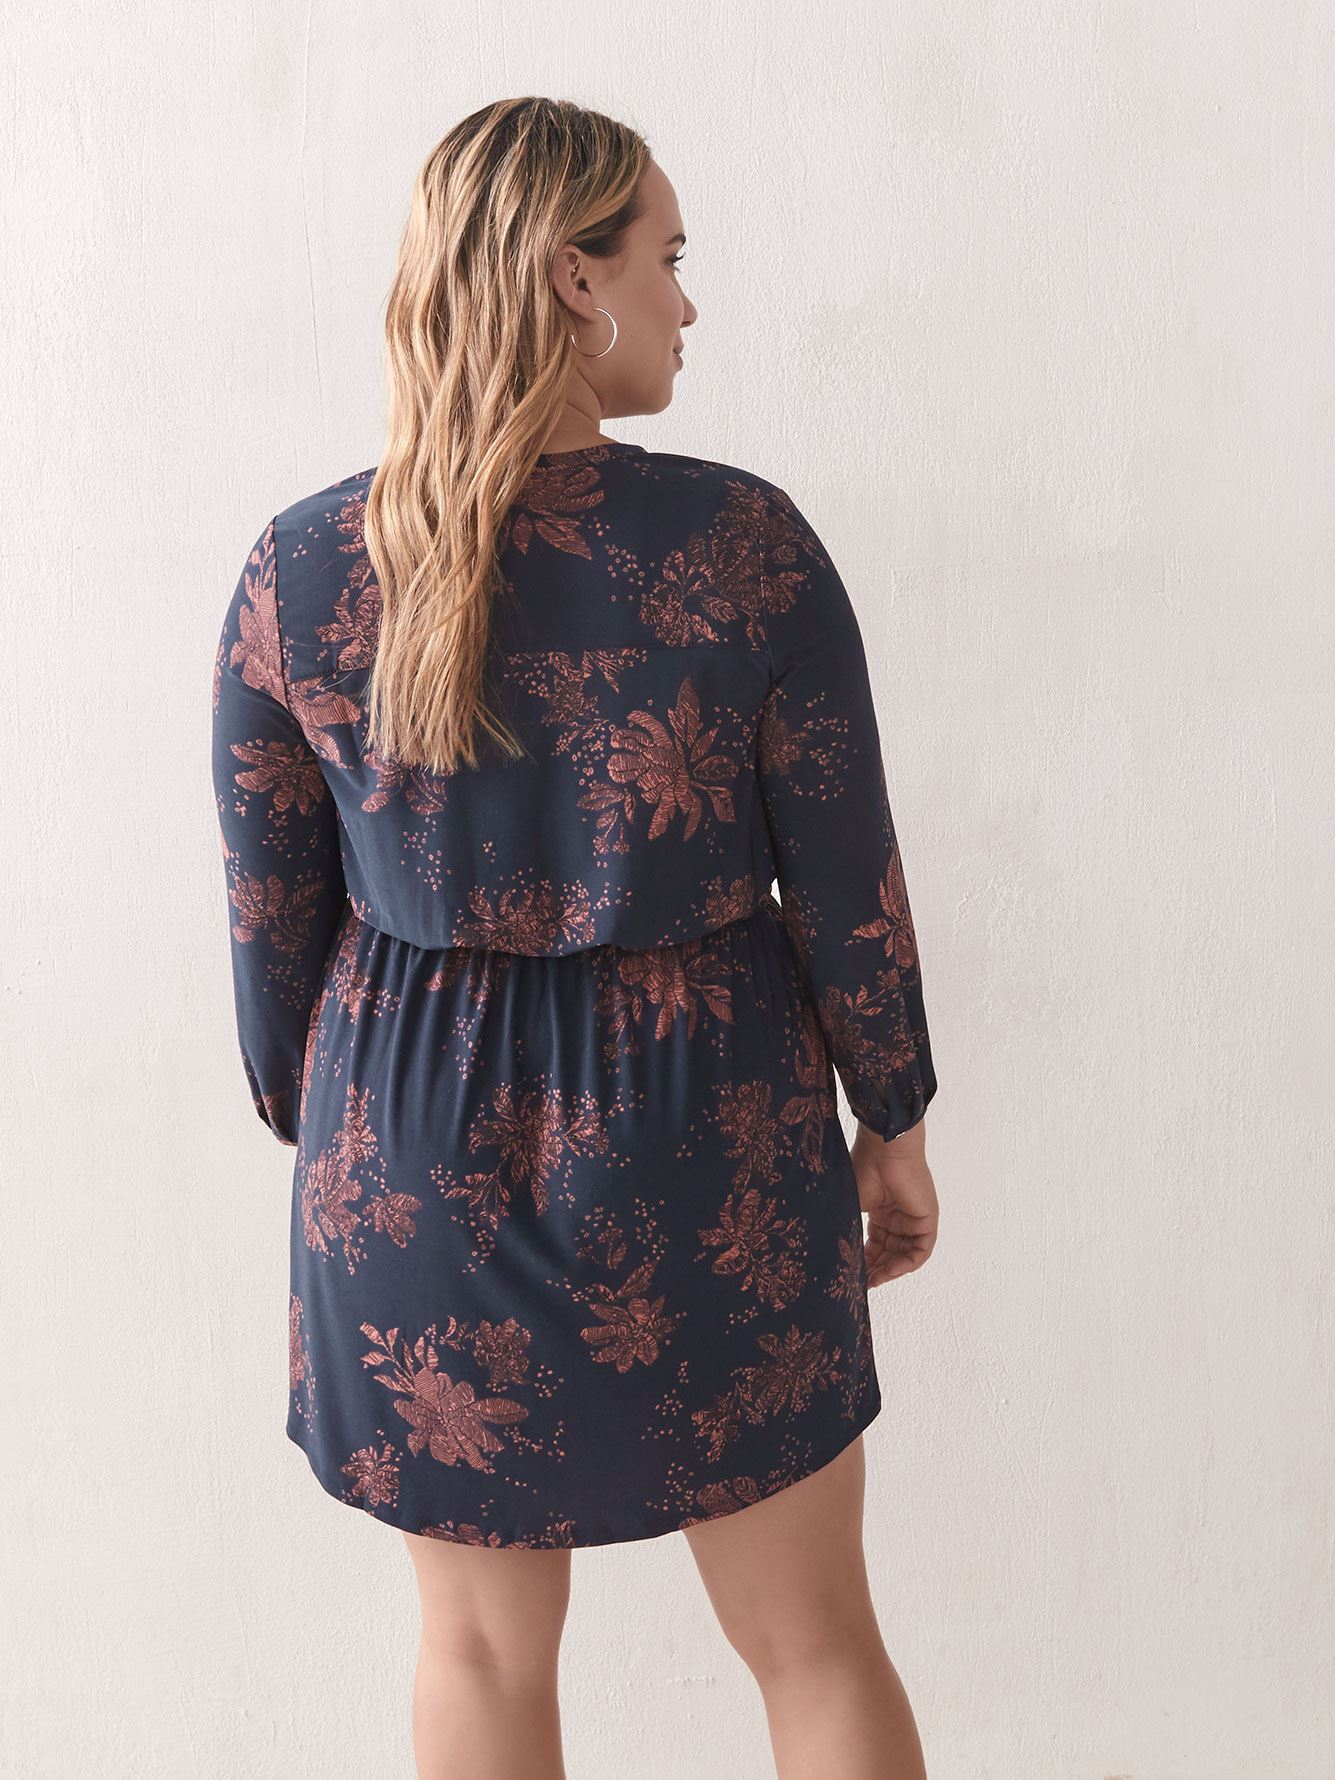 Long-Sleeve Floral Shirt Dress - Addition Elle